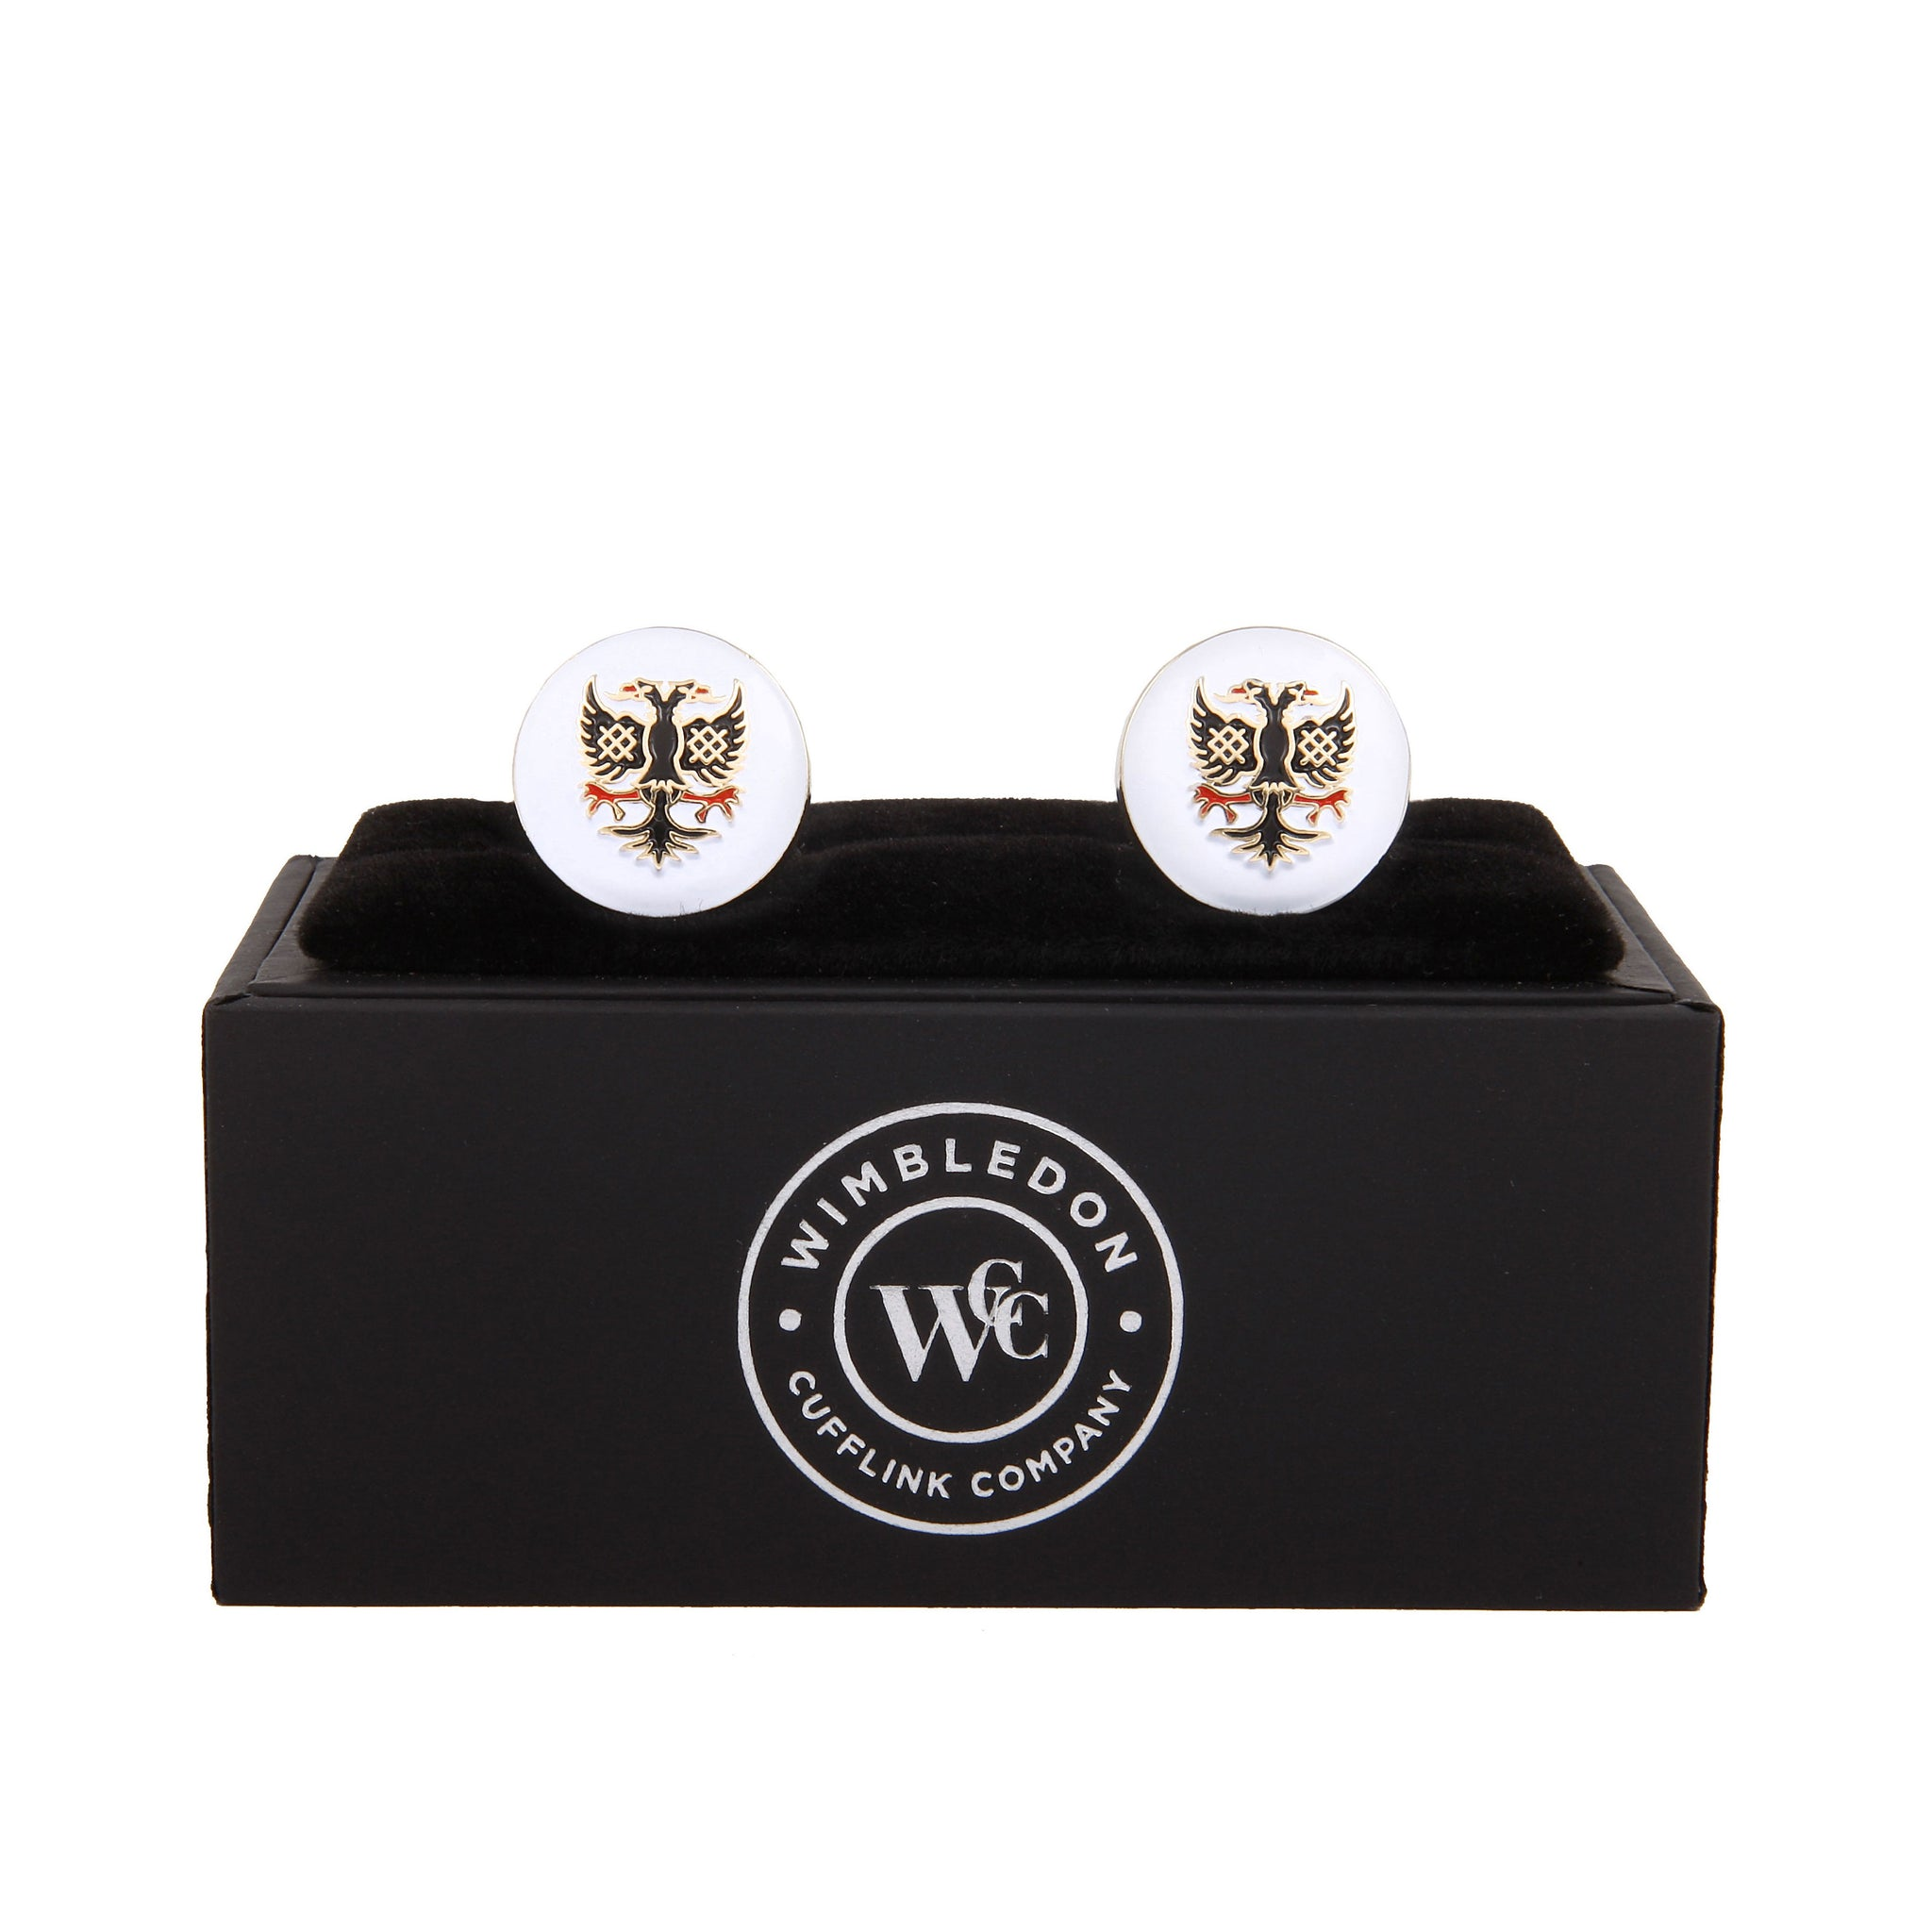 The Wimbledon Eagle Cufflink